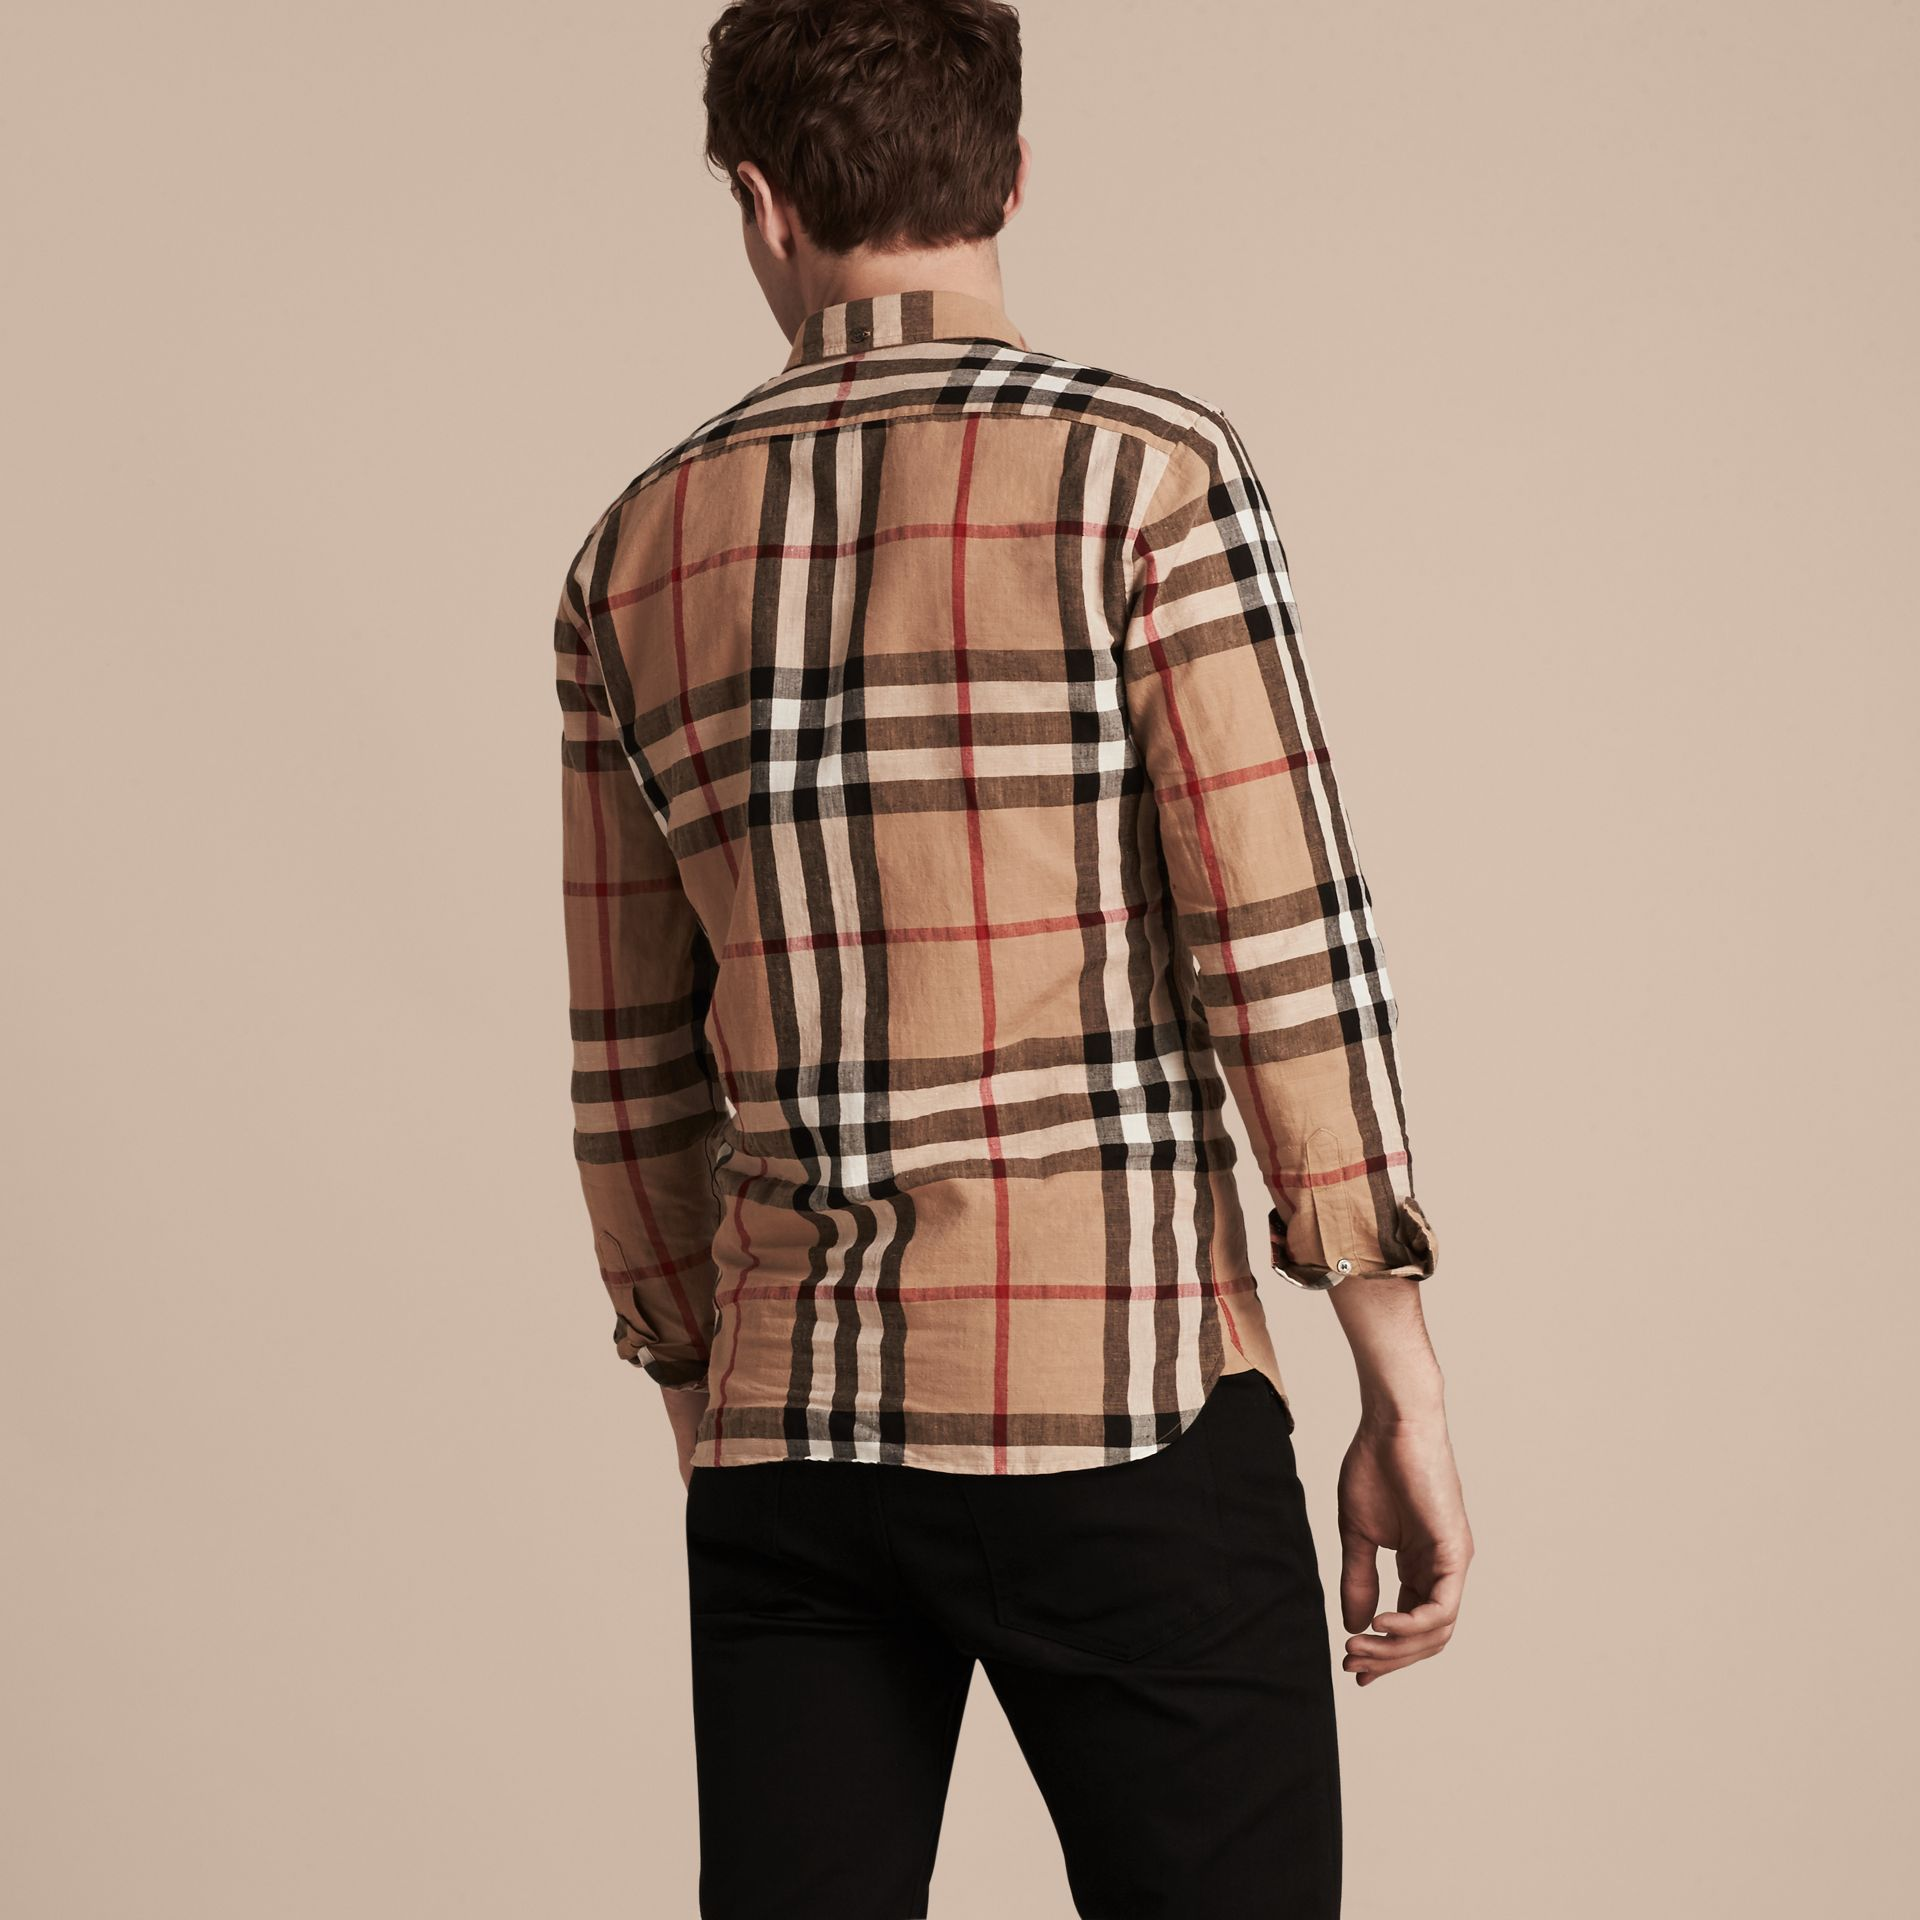 Camel Button-down Collar Check Linen Cotton Shirt Camel - gallery image 3